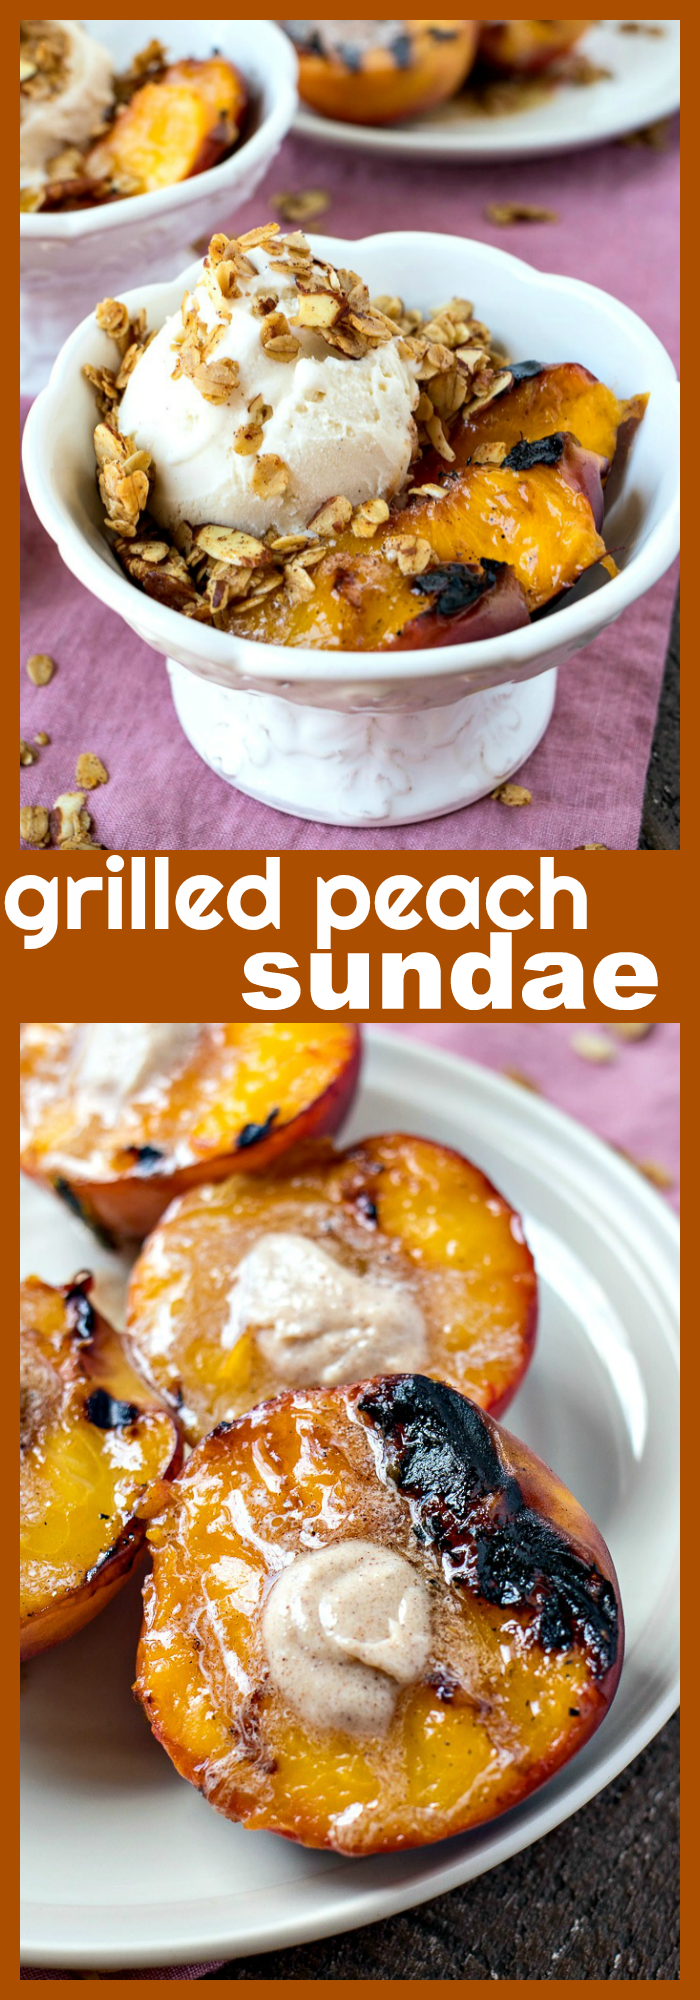 Grilled Peach Sundaes – Fresh peaches are grilled and served with cinnamon butter, vanilla bean ice cream, and homemade cinnamon granola #recipe #icecream #sundae #peach #grill #dessert #granola #easy #grilleddesserts